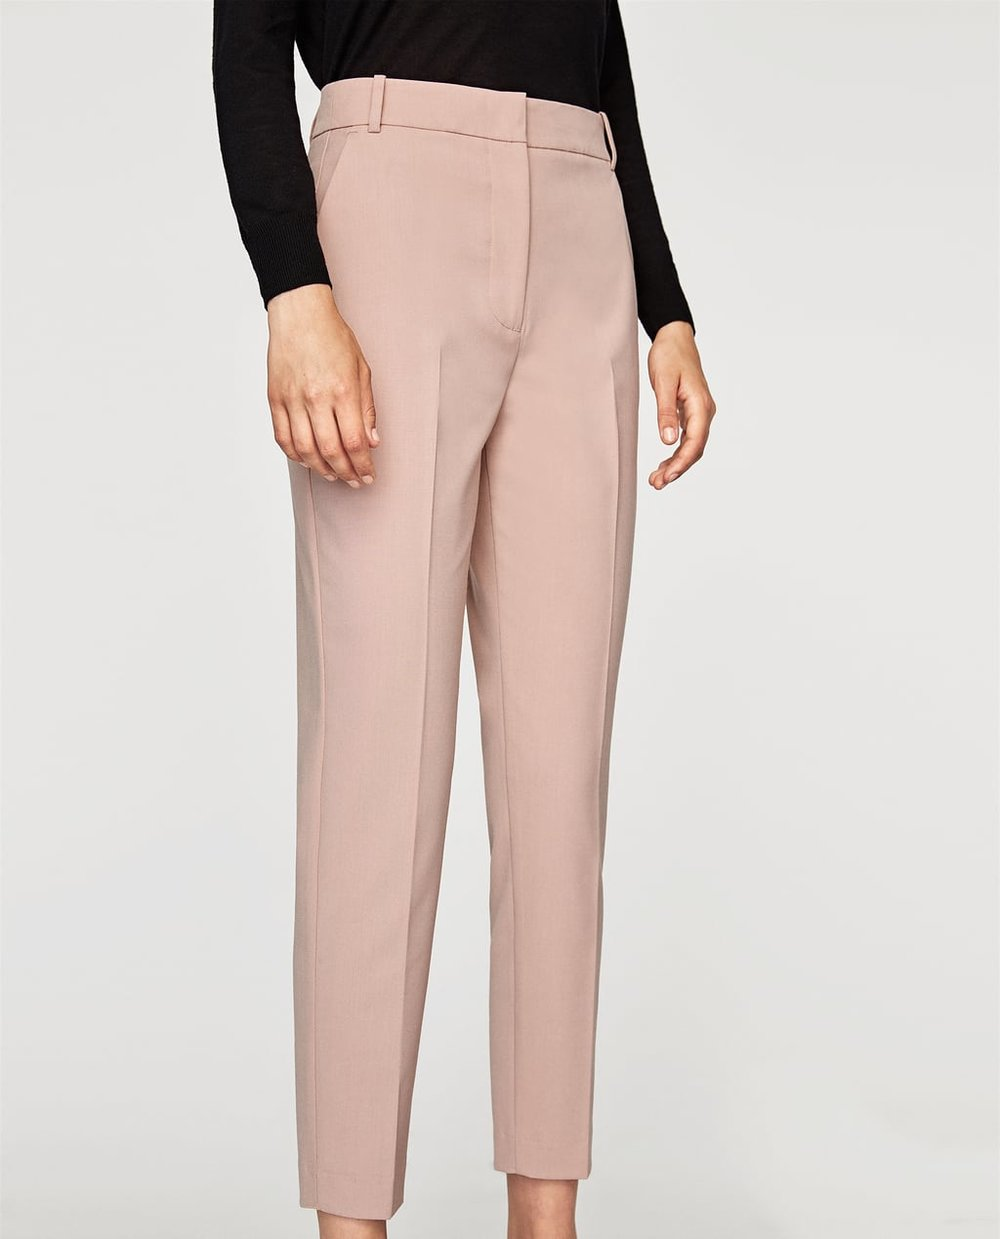 zara trousers.jpg